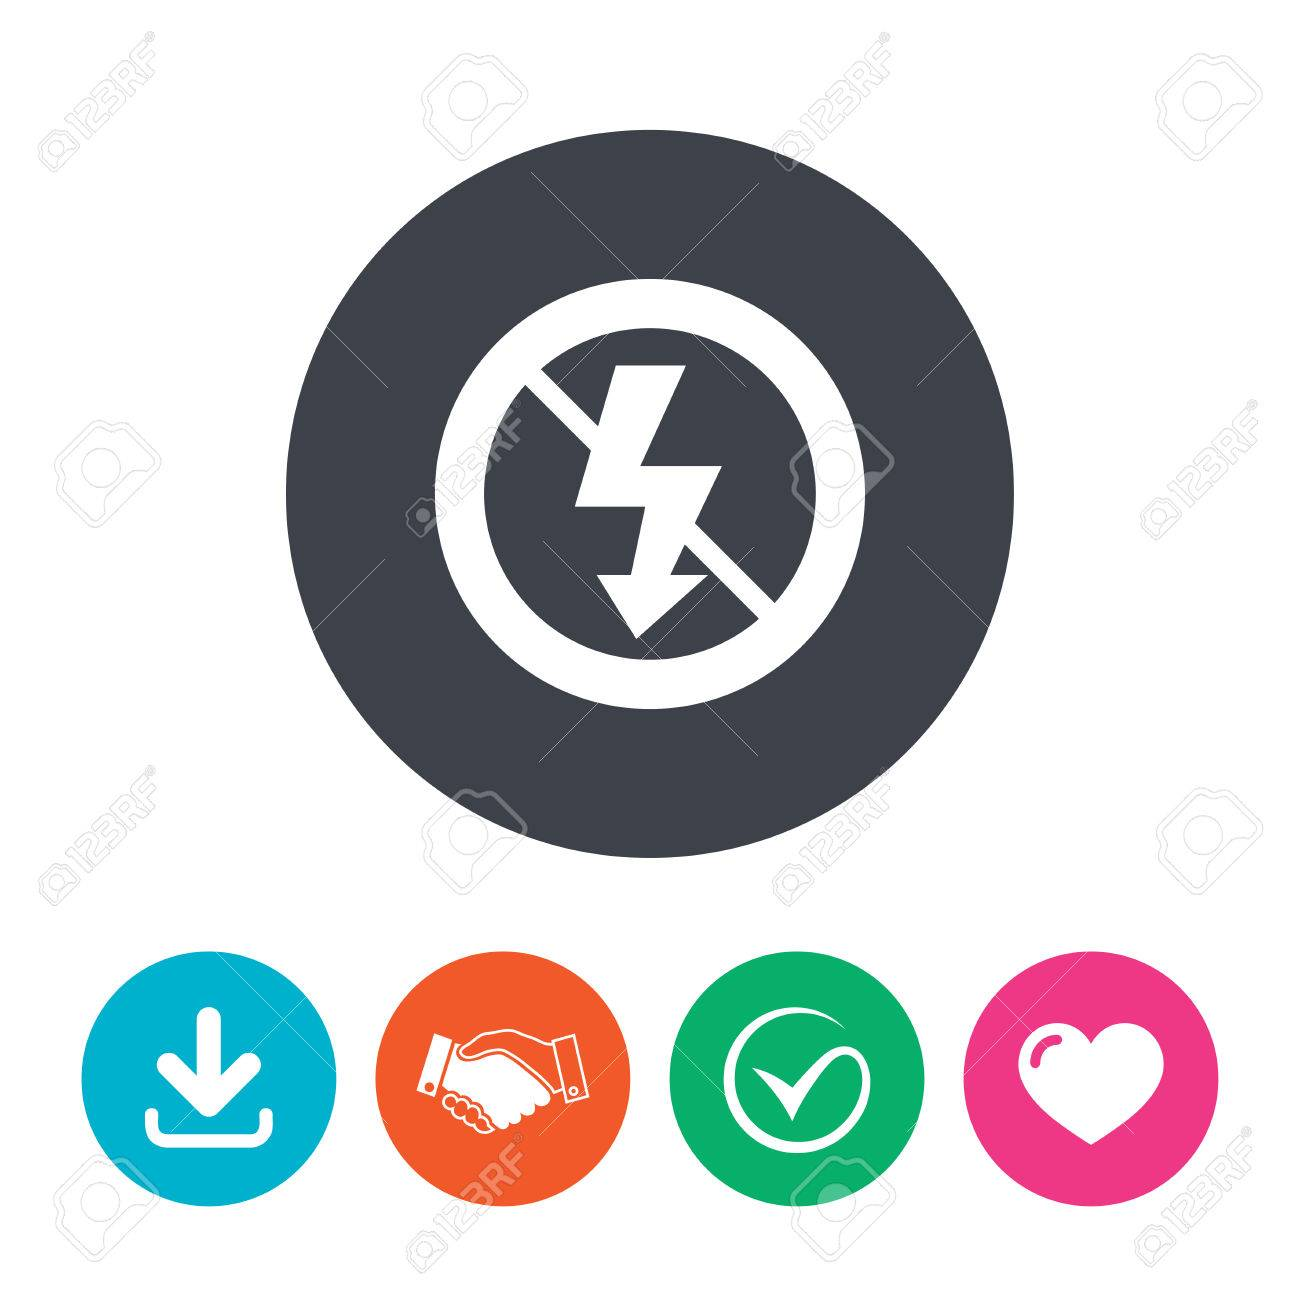 No Photo flash sign icon  Lightning symbol  Download arrow, handshake,